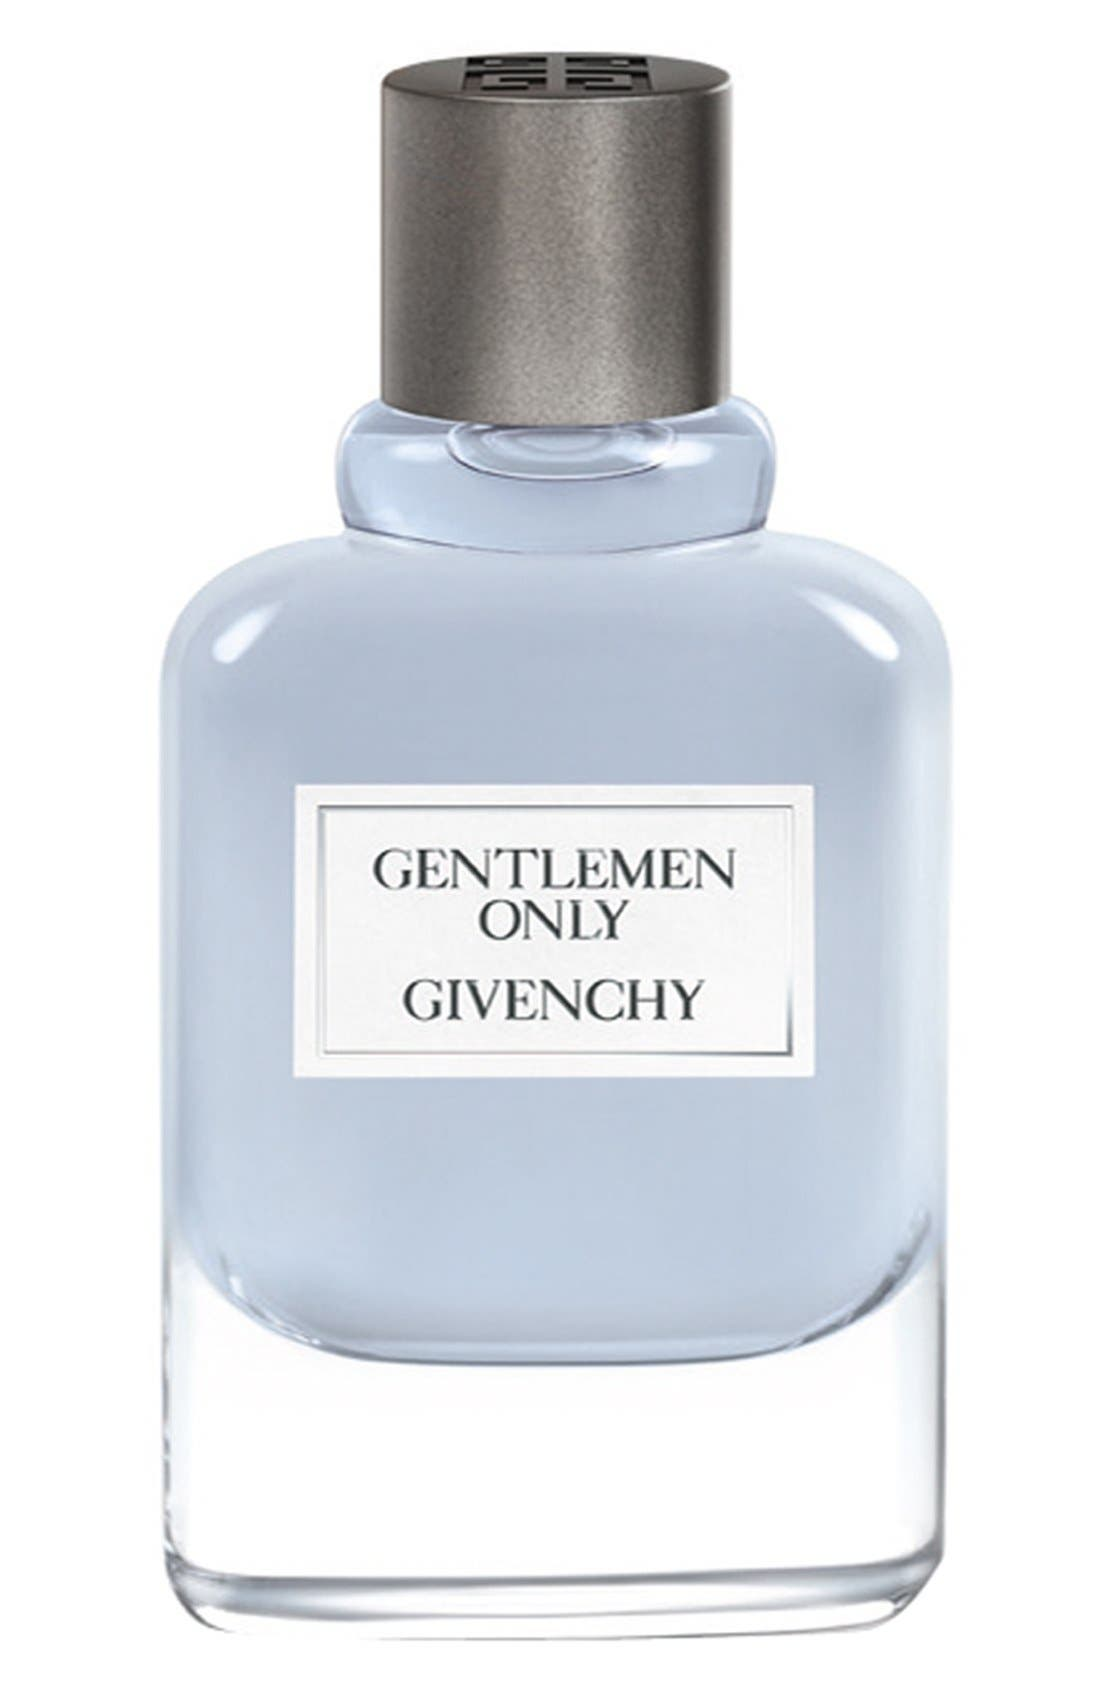 'Gentlemen Only' Eau de Toilette,                             Main thumbnail 1, color,                             NO COLOR